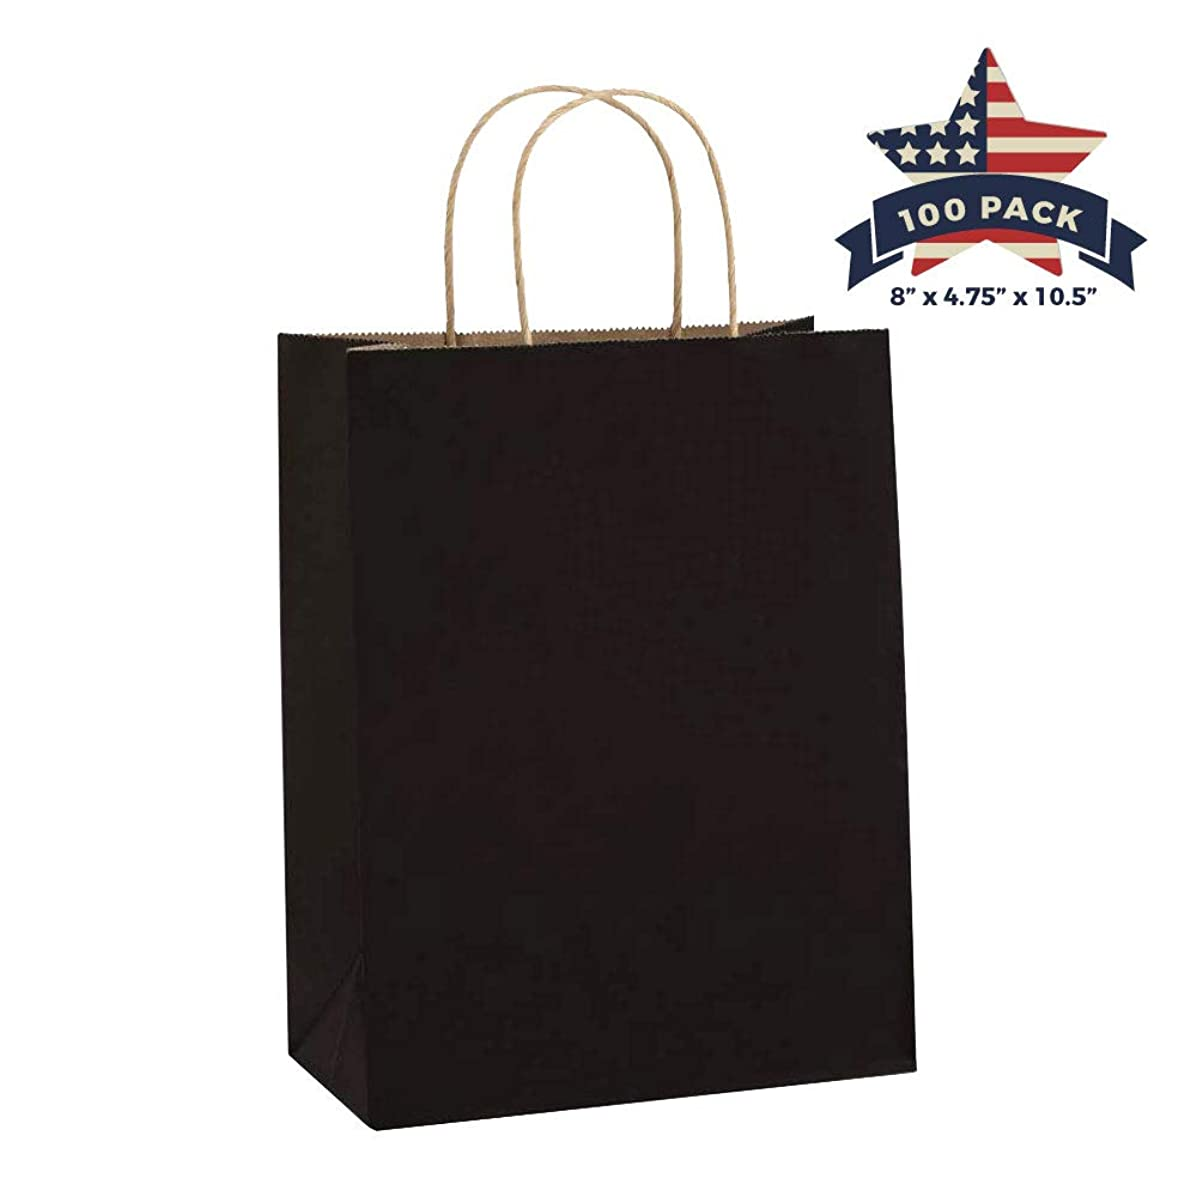 Black Paper Bags with Handles – 100 Pcs 8x4.75x10.5 inches Bulk Gift Bags, Shopping Bags, Party Bags, Favor Bags, Goody Bags, Cub, Business Bags, Kraft Paper Bags, Retail Bags, Merchandise Bags